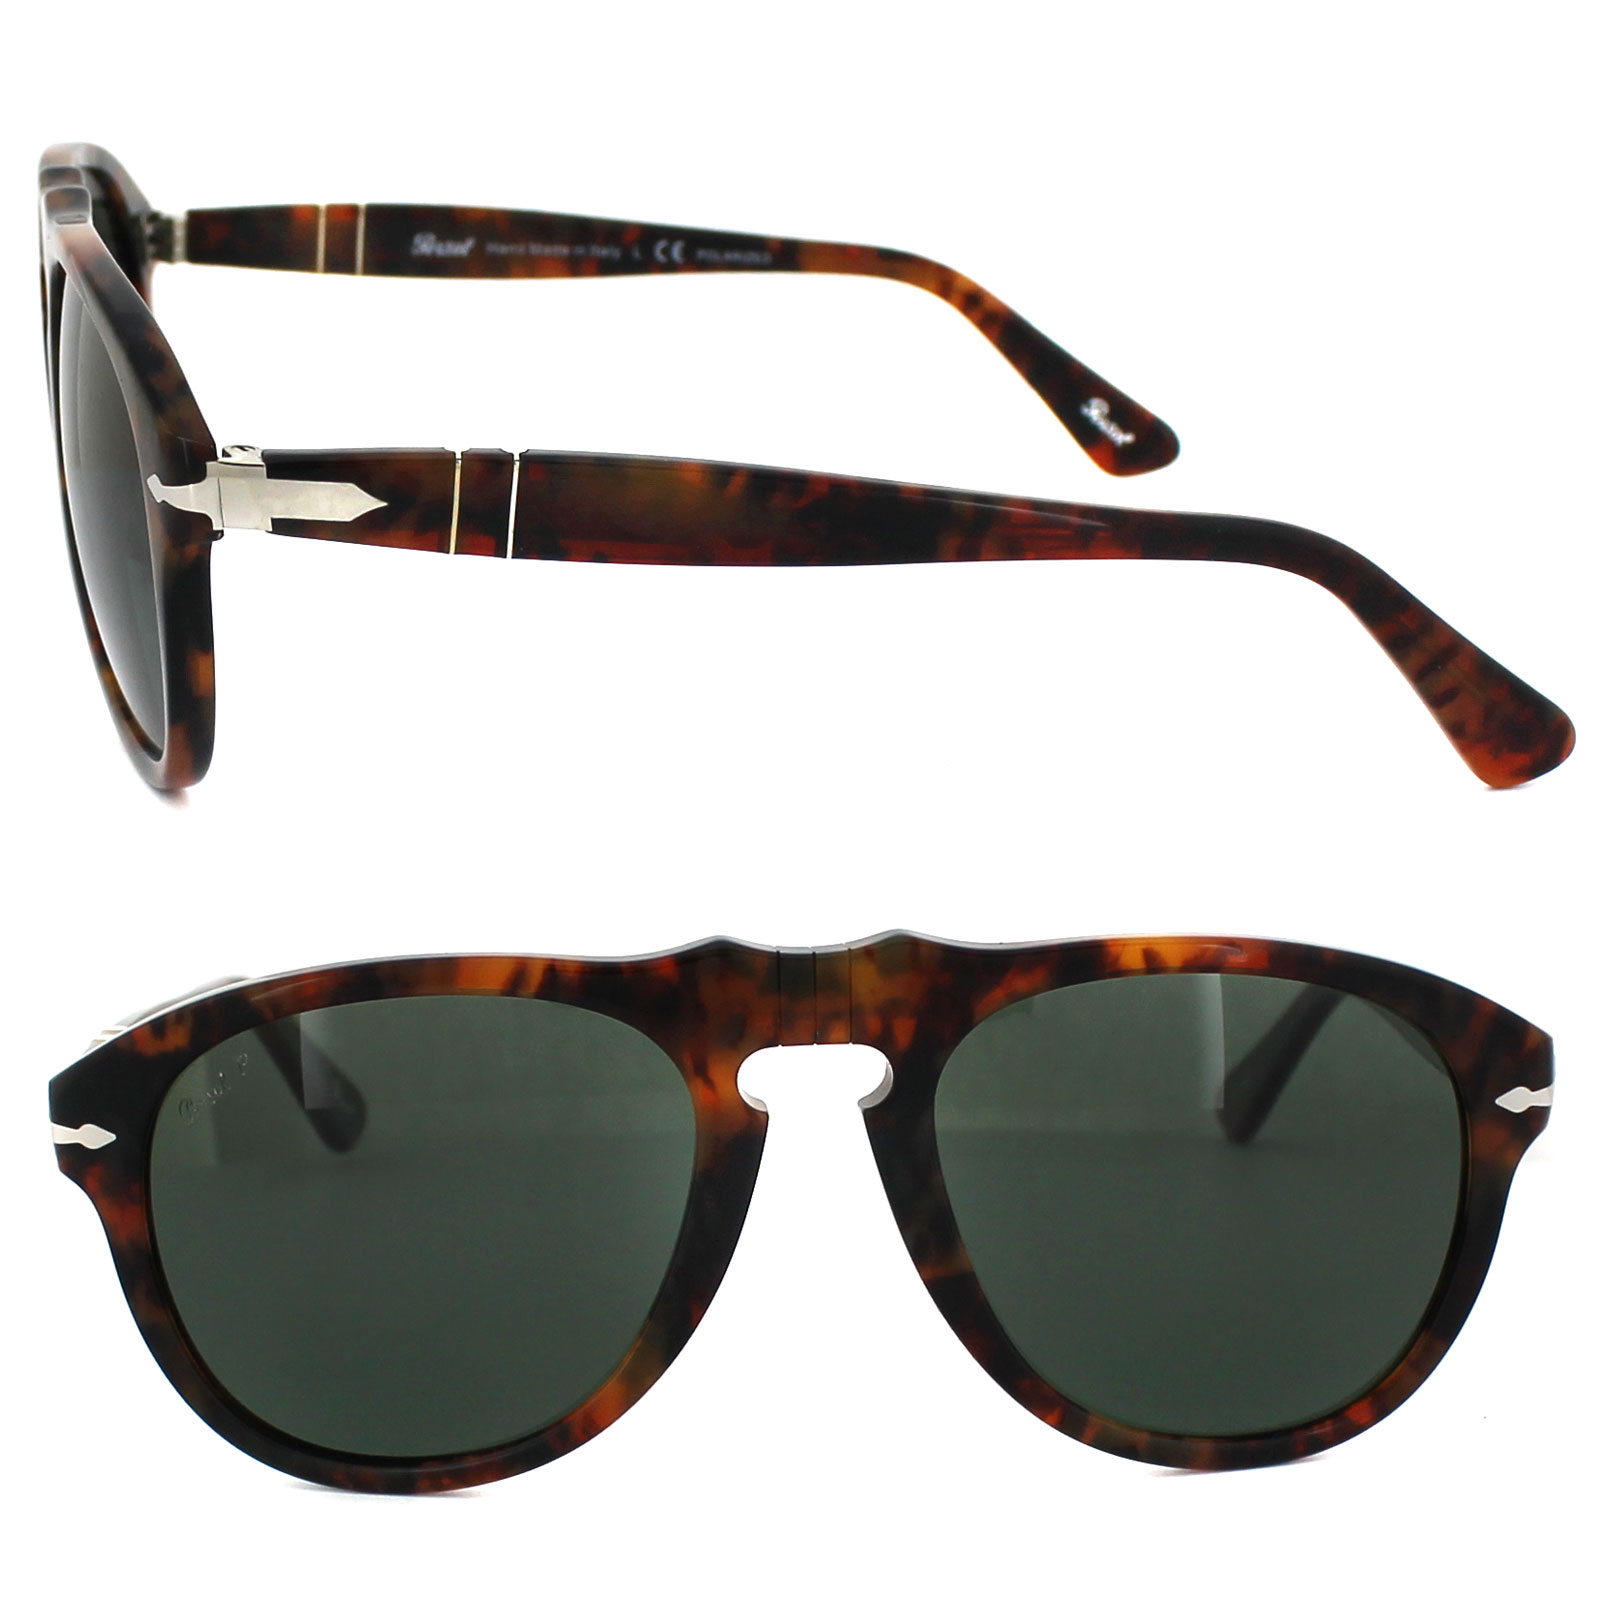 Cheap Persol 649 Sunglasses Discounted Sunglasses